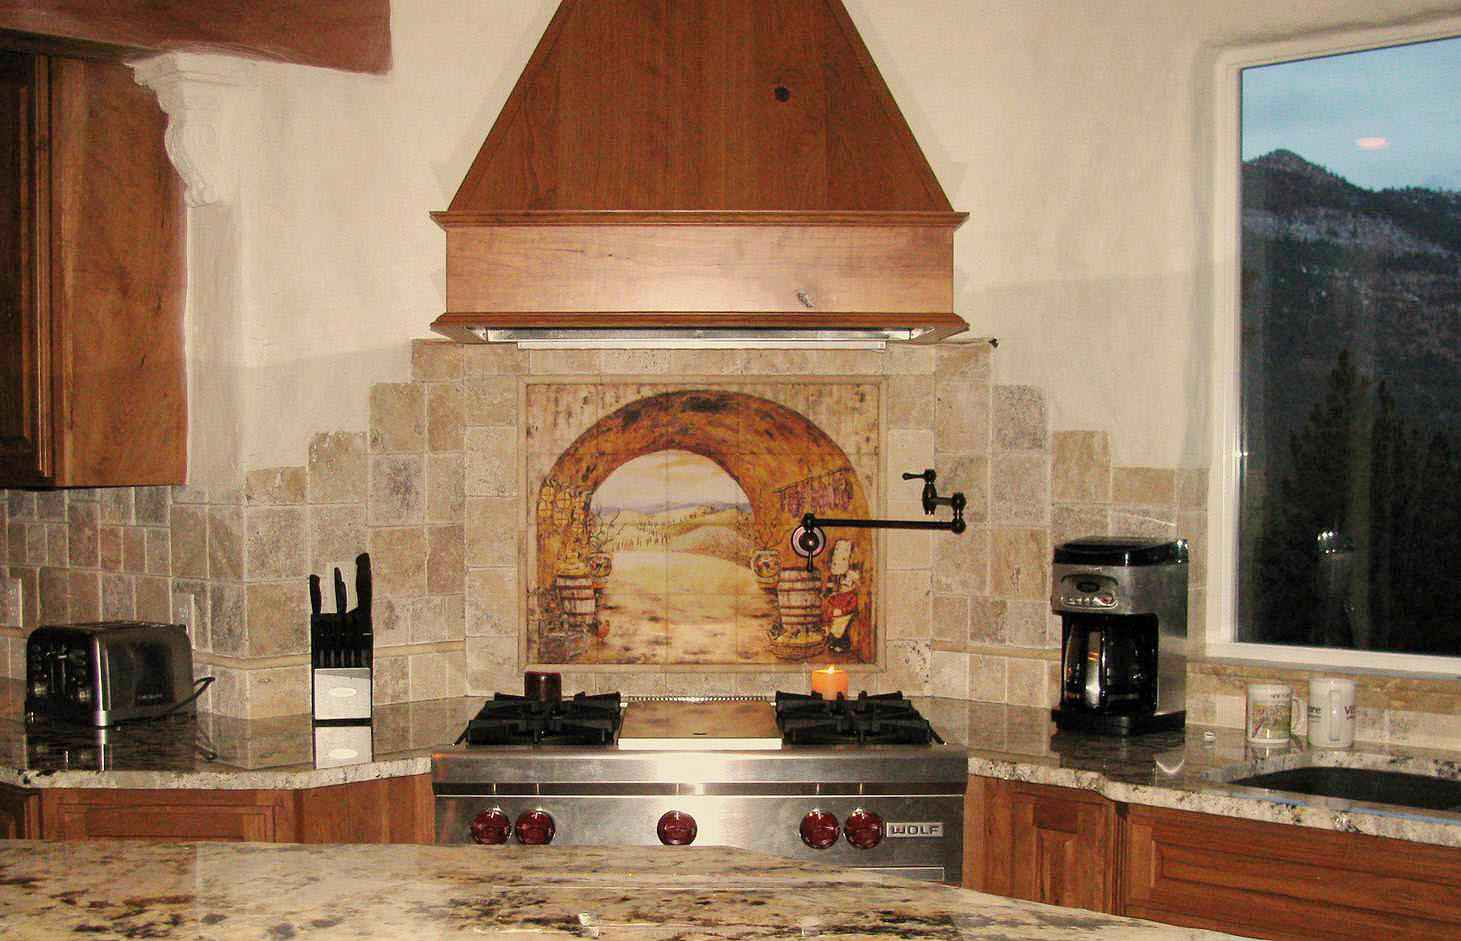 Glass tile backsplash design feel the home Kitchen tile design ideas backsplash